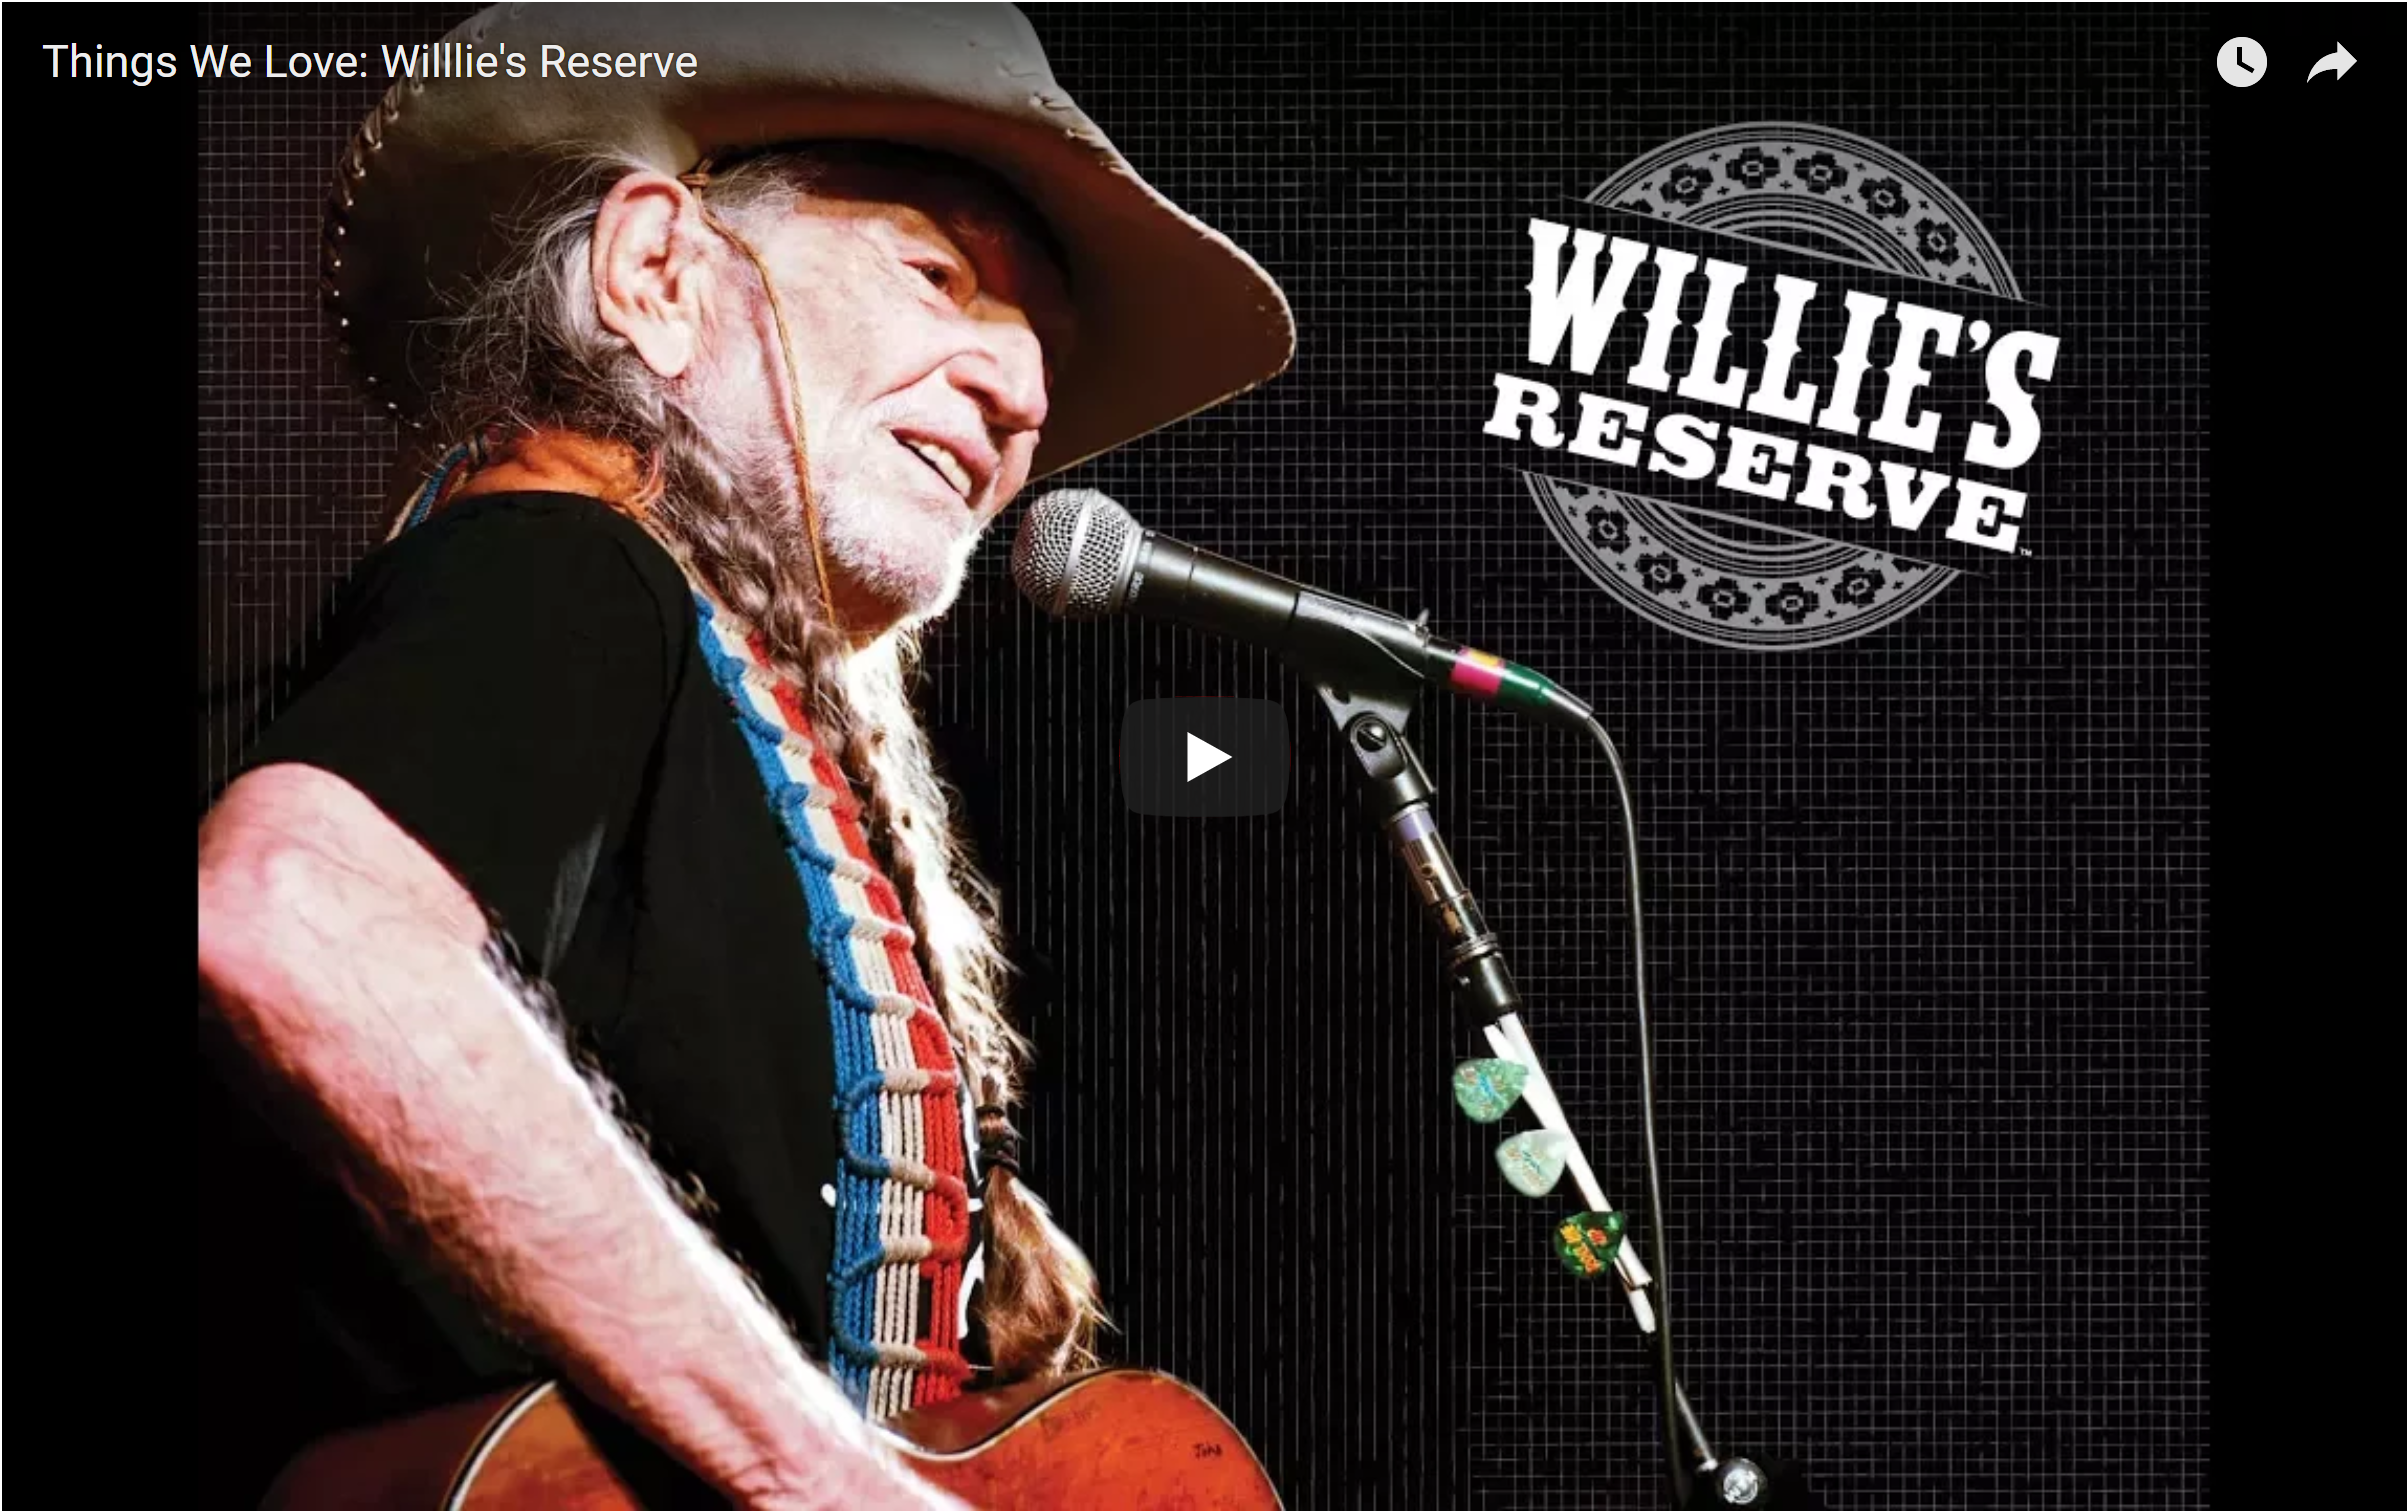 Things We Love: Willie's Reserve